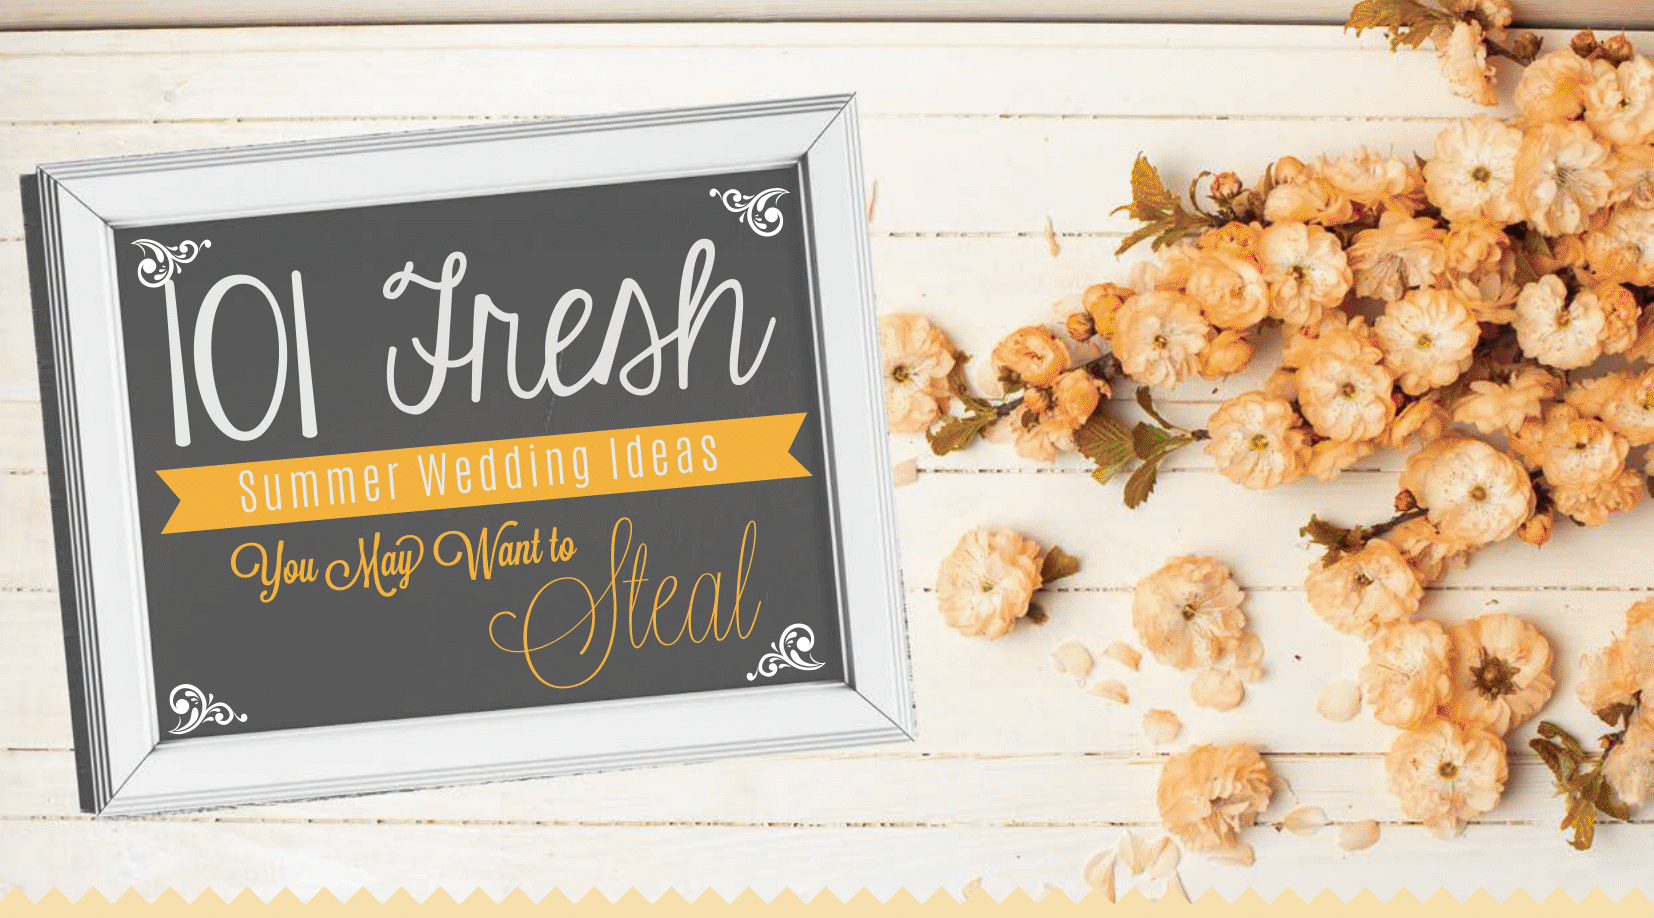 101 Fresh Summer Wedding Ideas You May Want to Steal